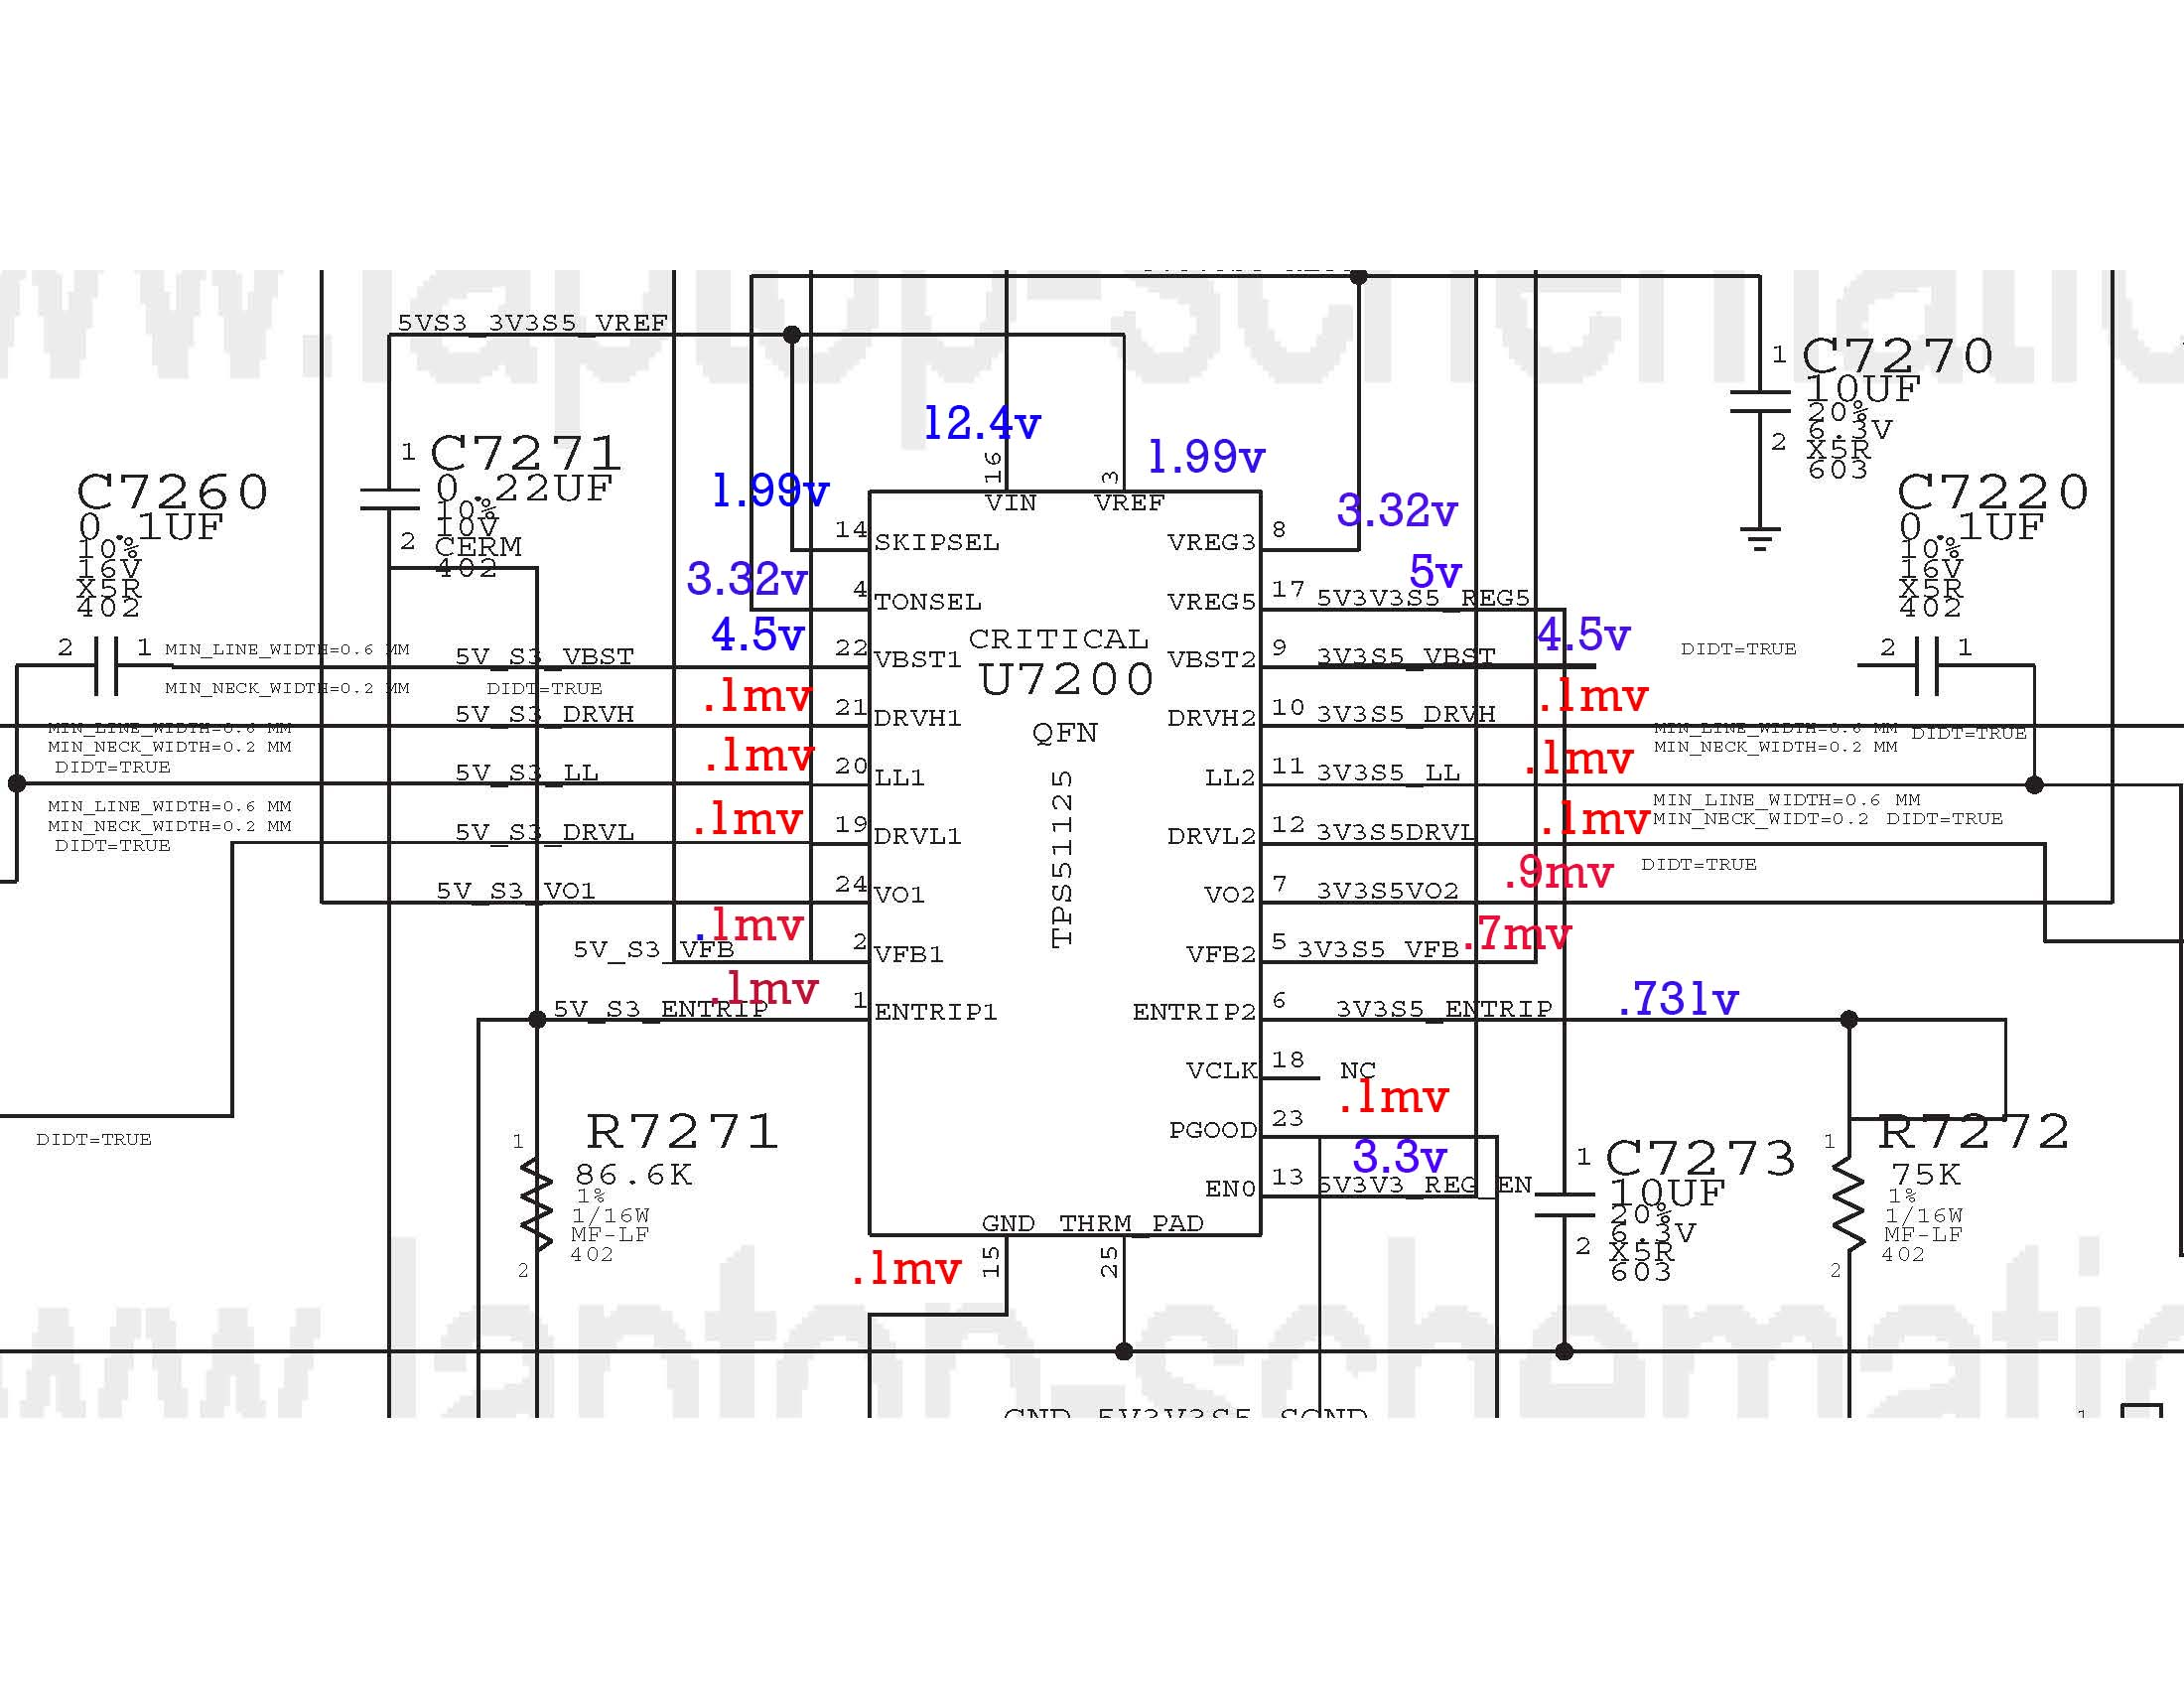 Smc Issue On Mbp 13 Hardware Troubleshooting Guide Page 54 Ipad 2 Block Diagram Lb 820 2530 Schematic U7200